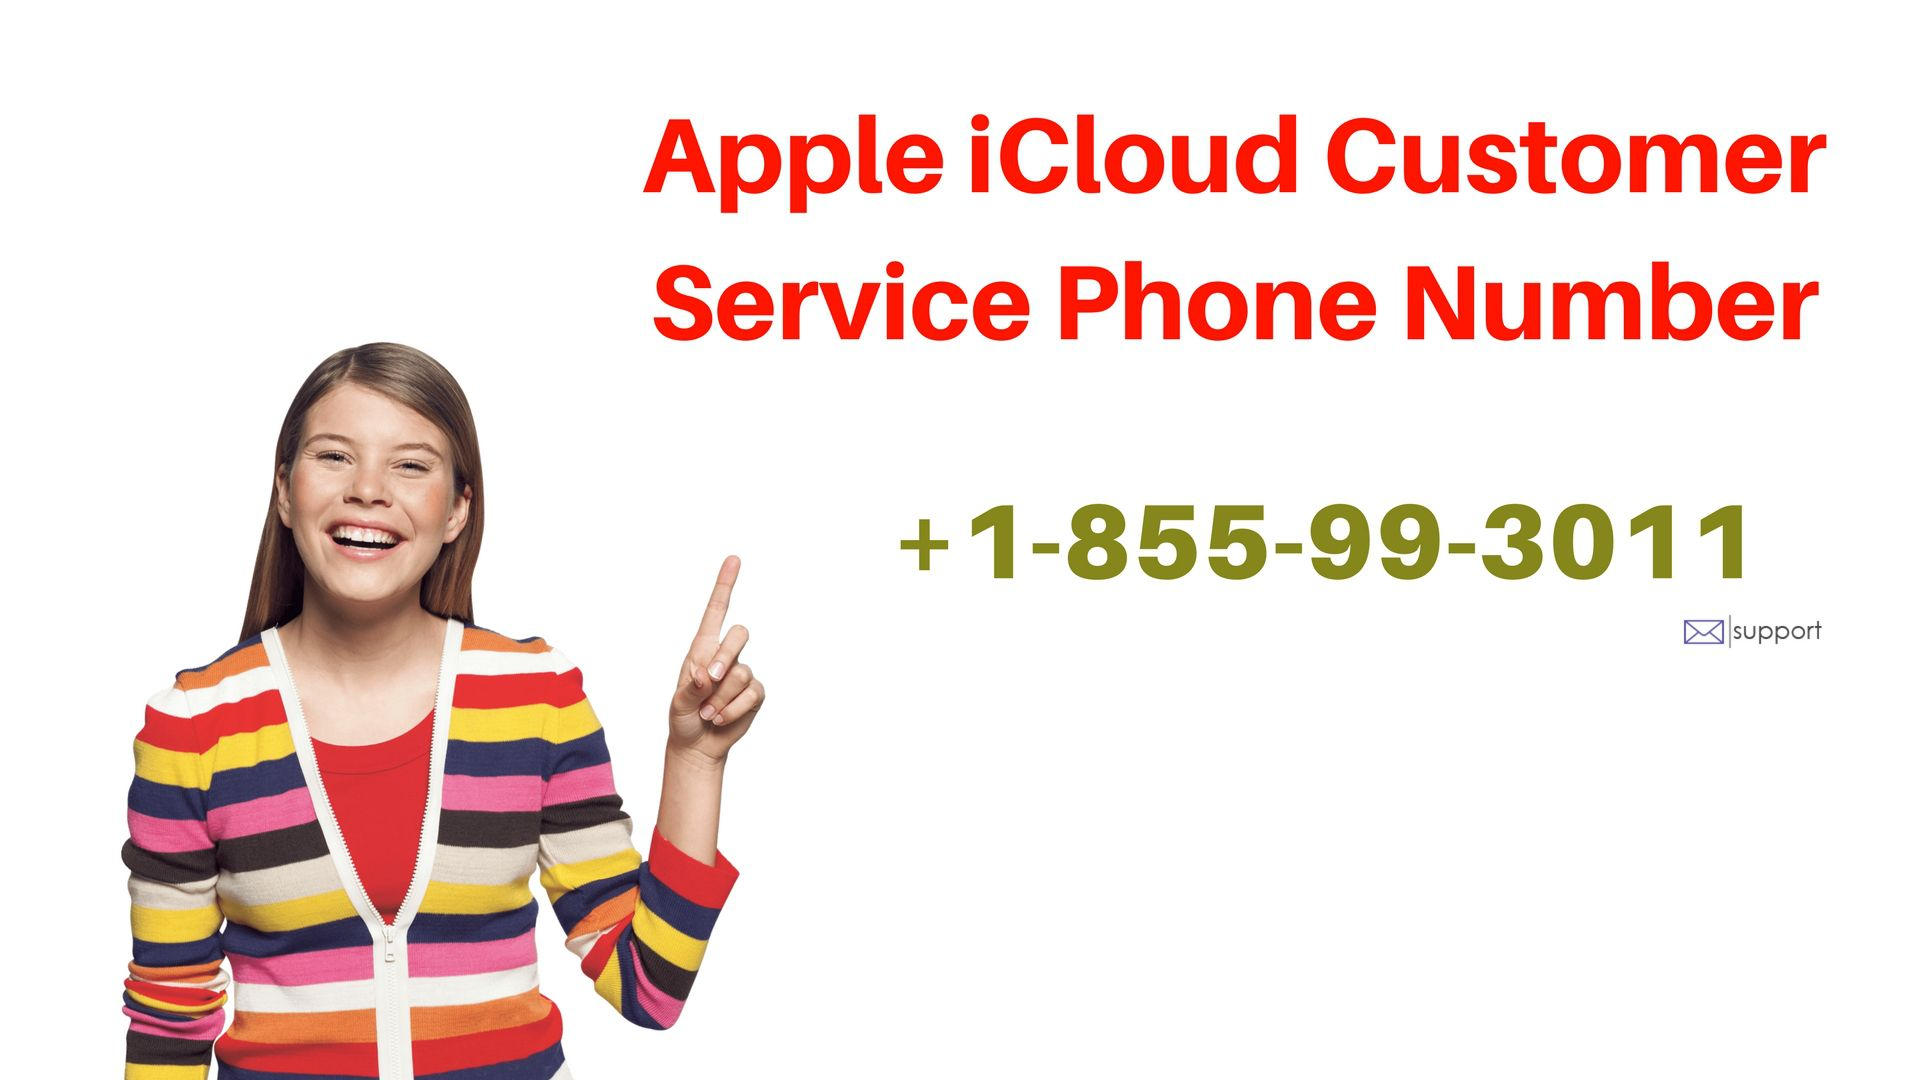 Tips for Offering Security to Apple iCloud Account